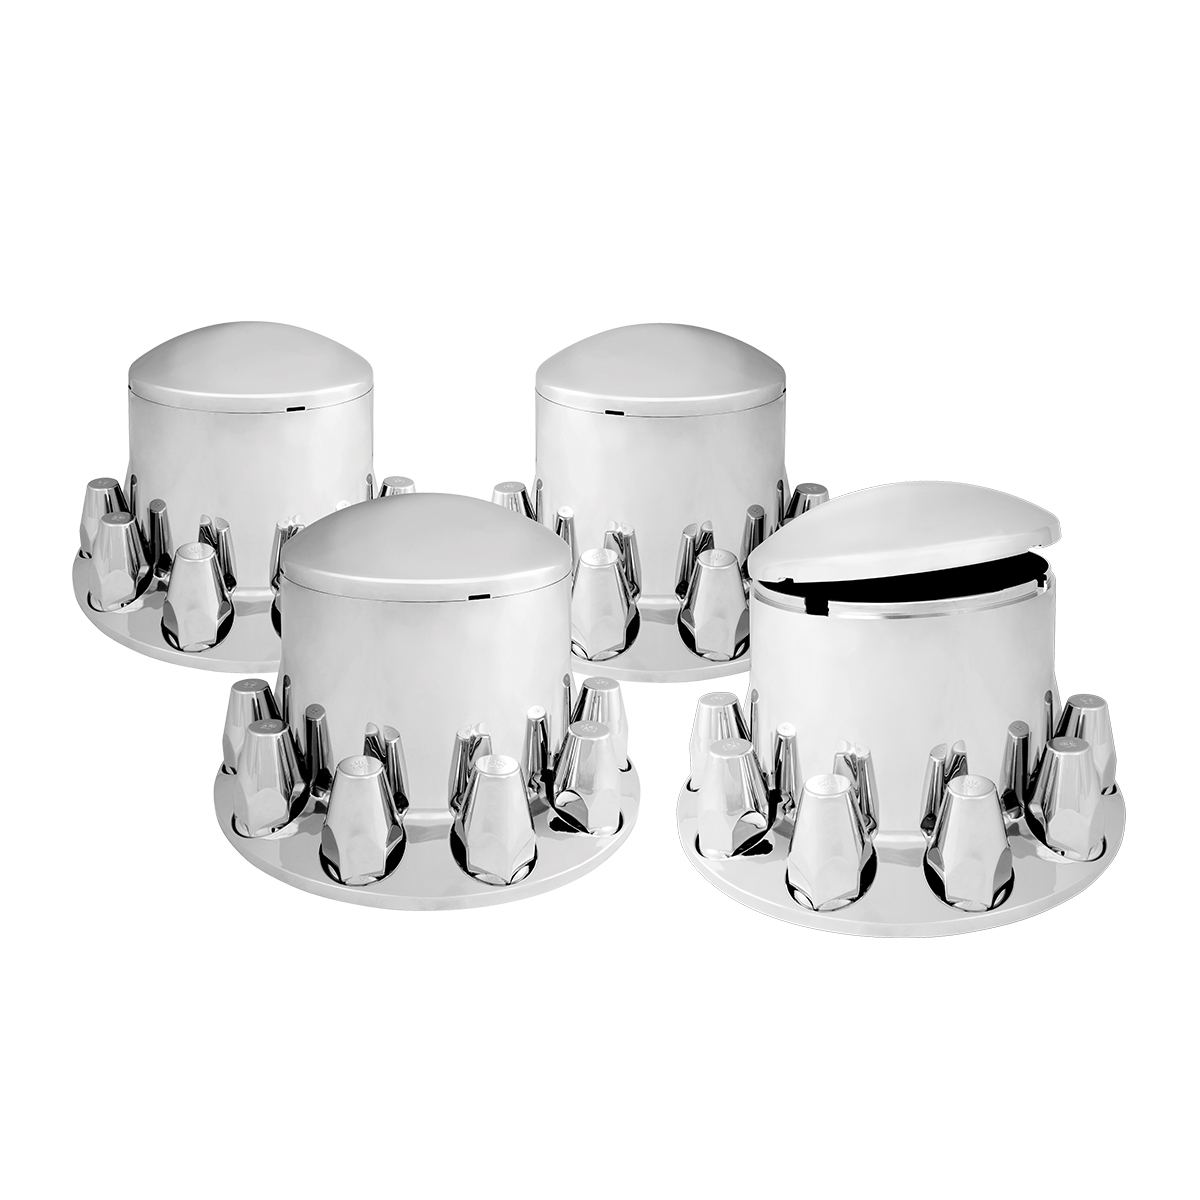 40244 Chrome Plastic Rear Axle Cover Set with Round Hub Caps